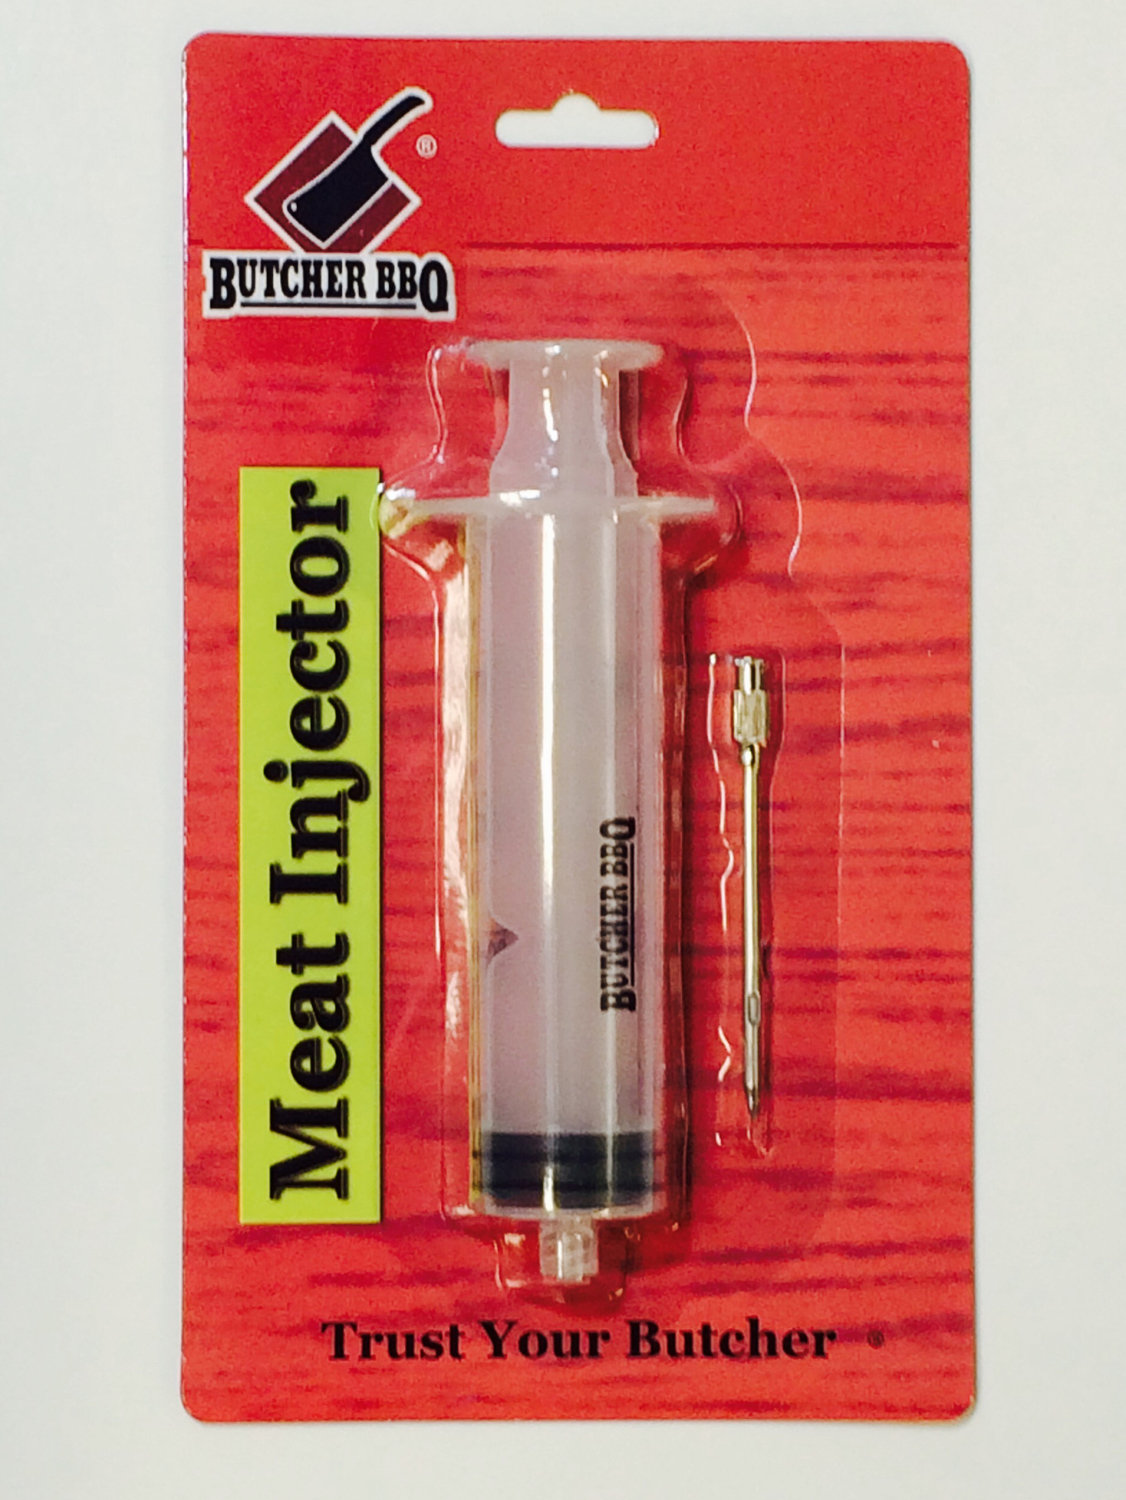 Butcher BBQ 60cc Injector & Needle